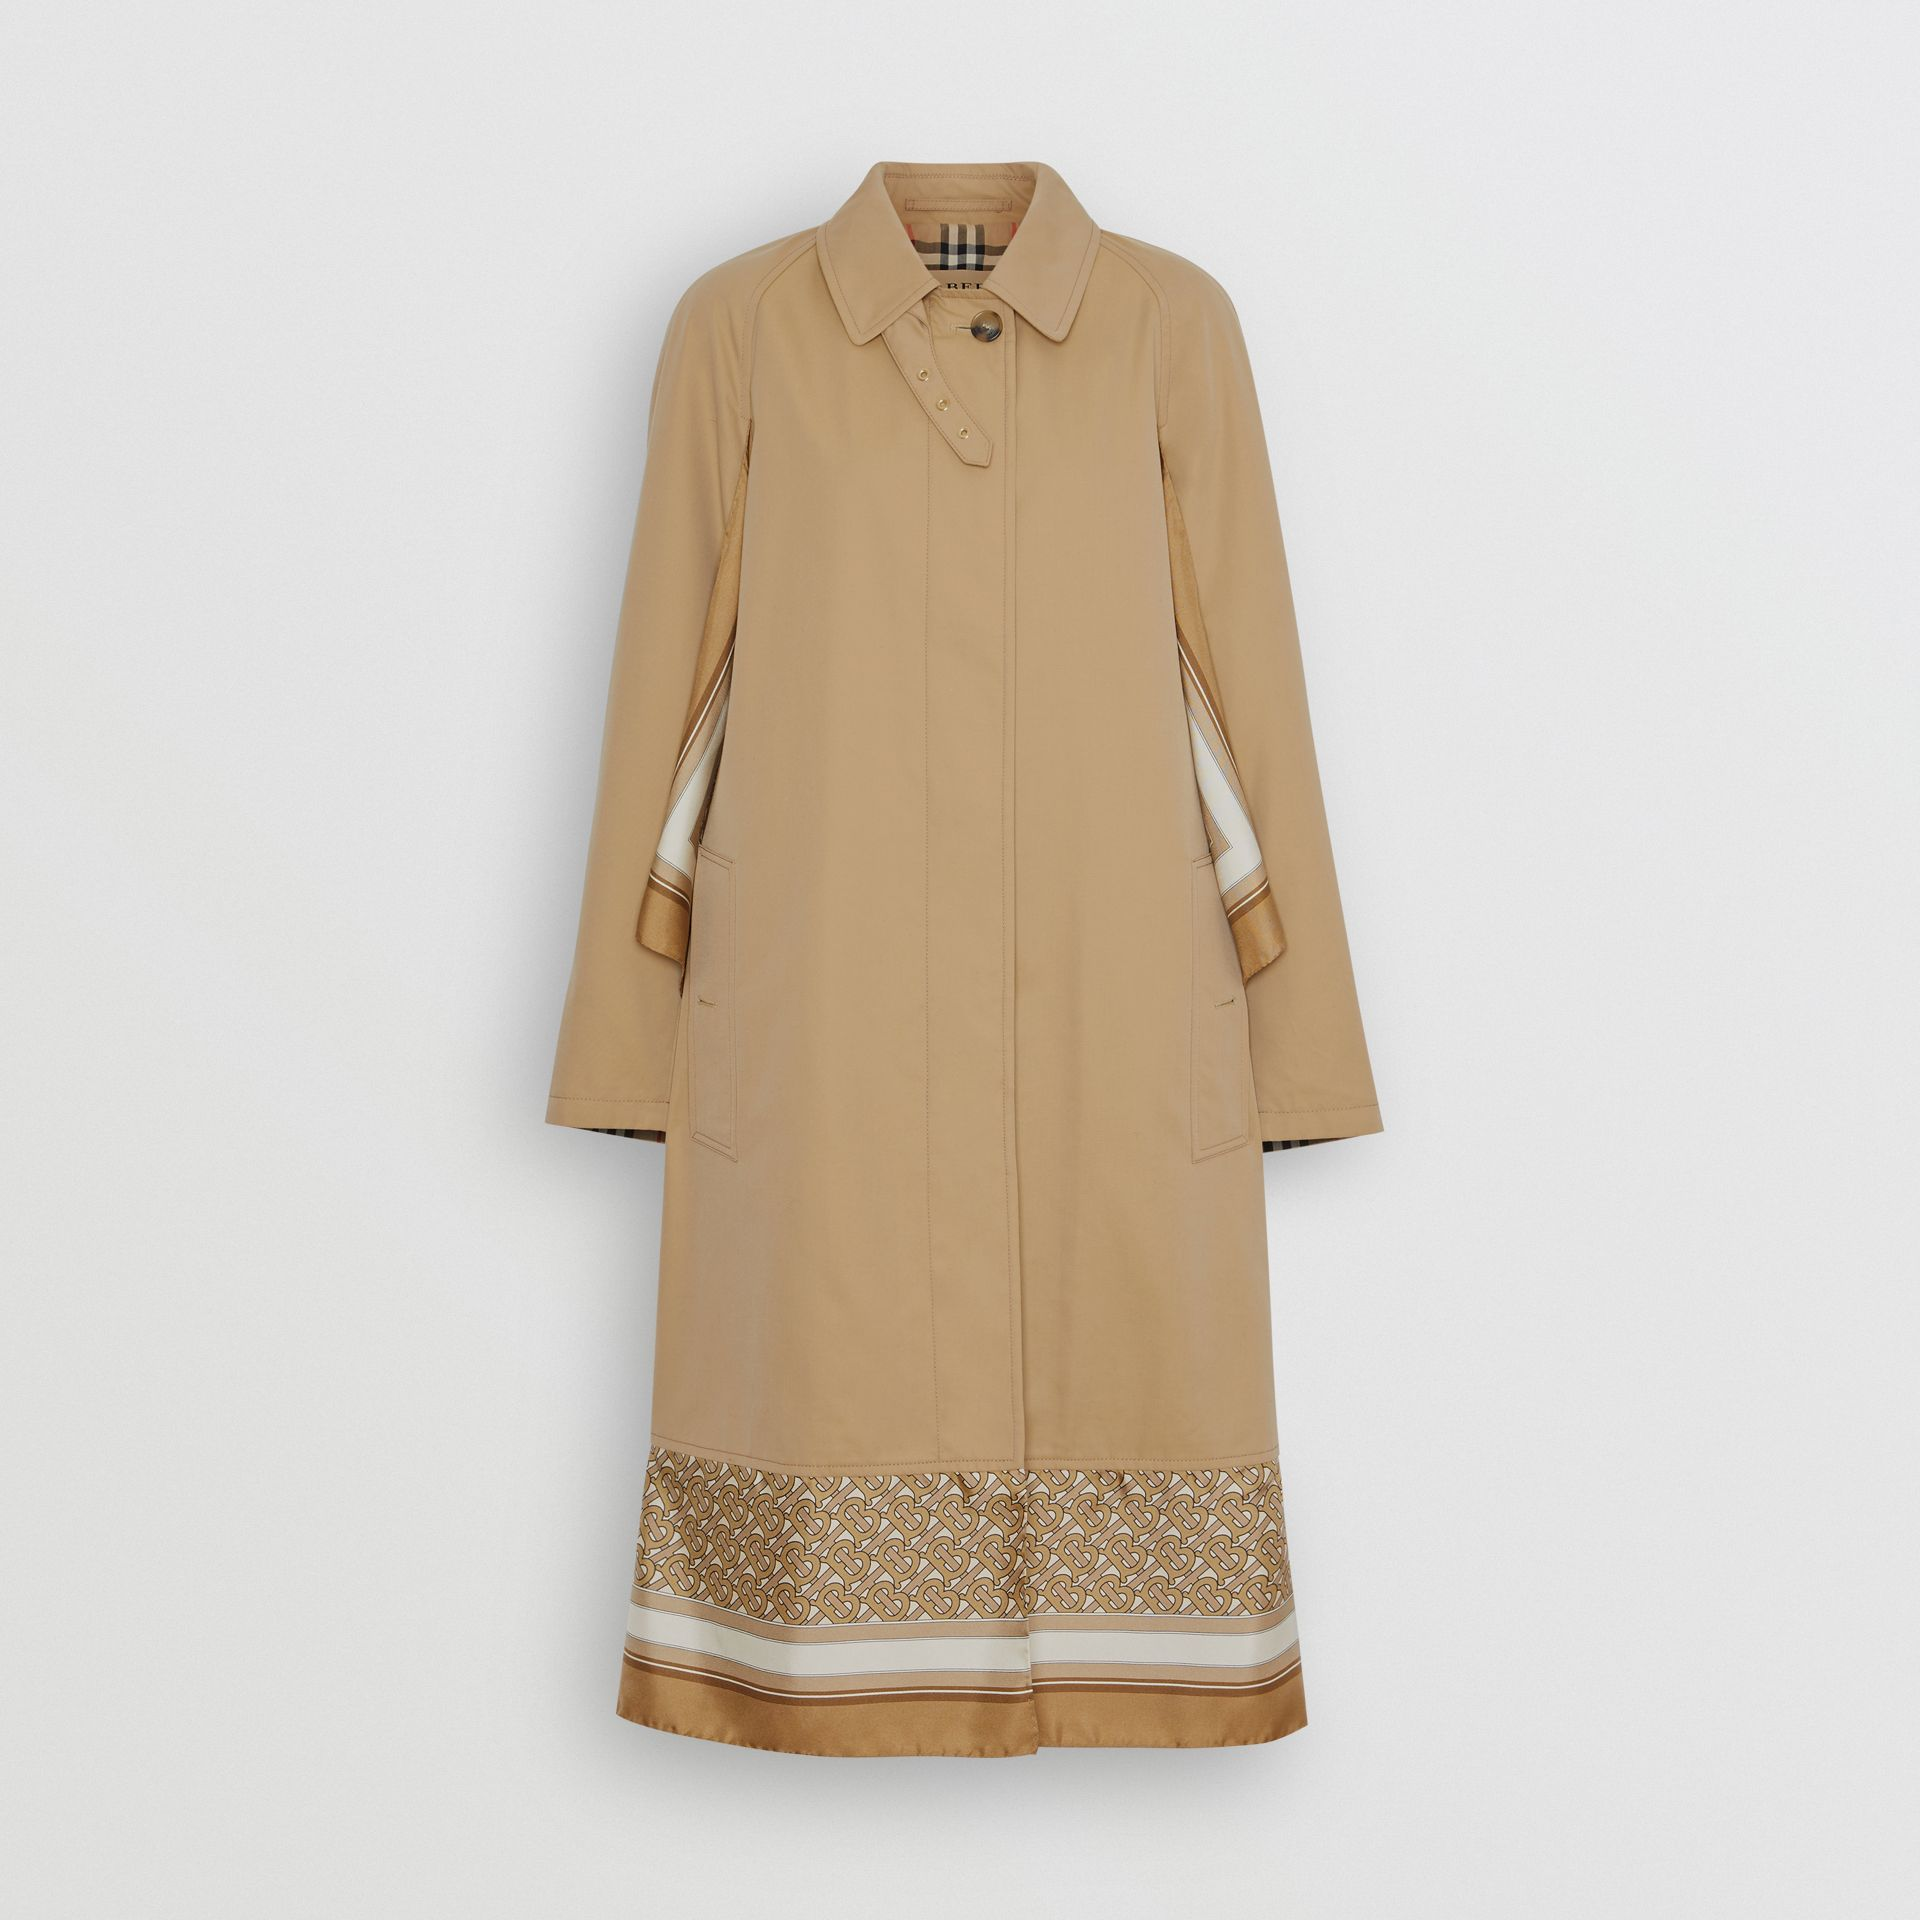 Monogram Print Silk Panel Cotton Car Coat in Pale Honey - Women | Burberry Hong Kong S.A.R - gallery image 3